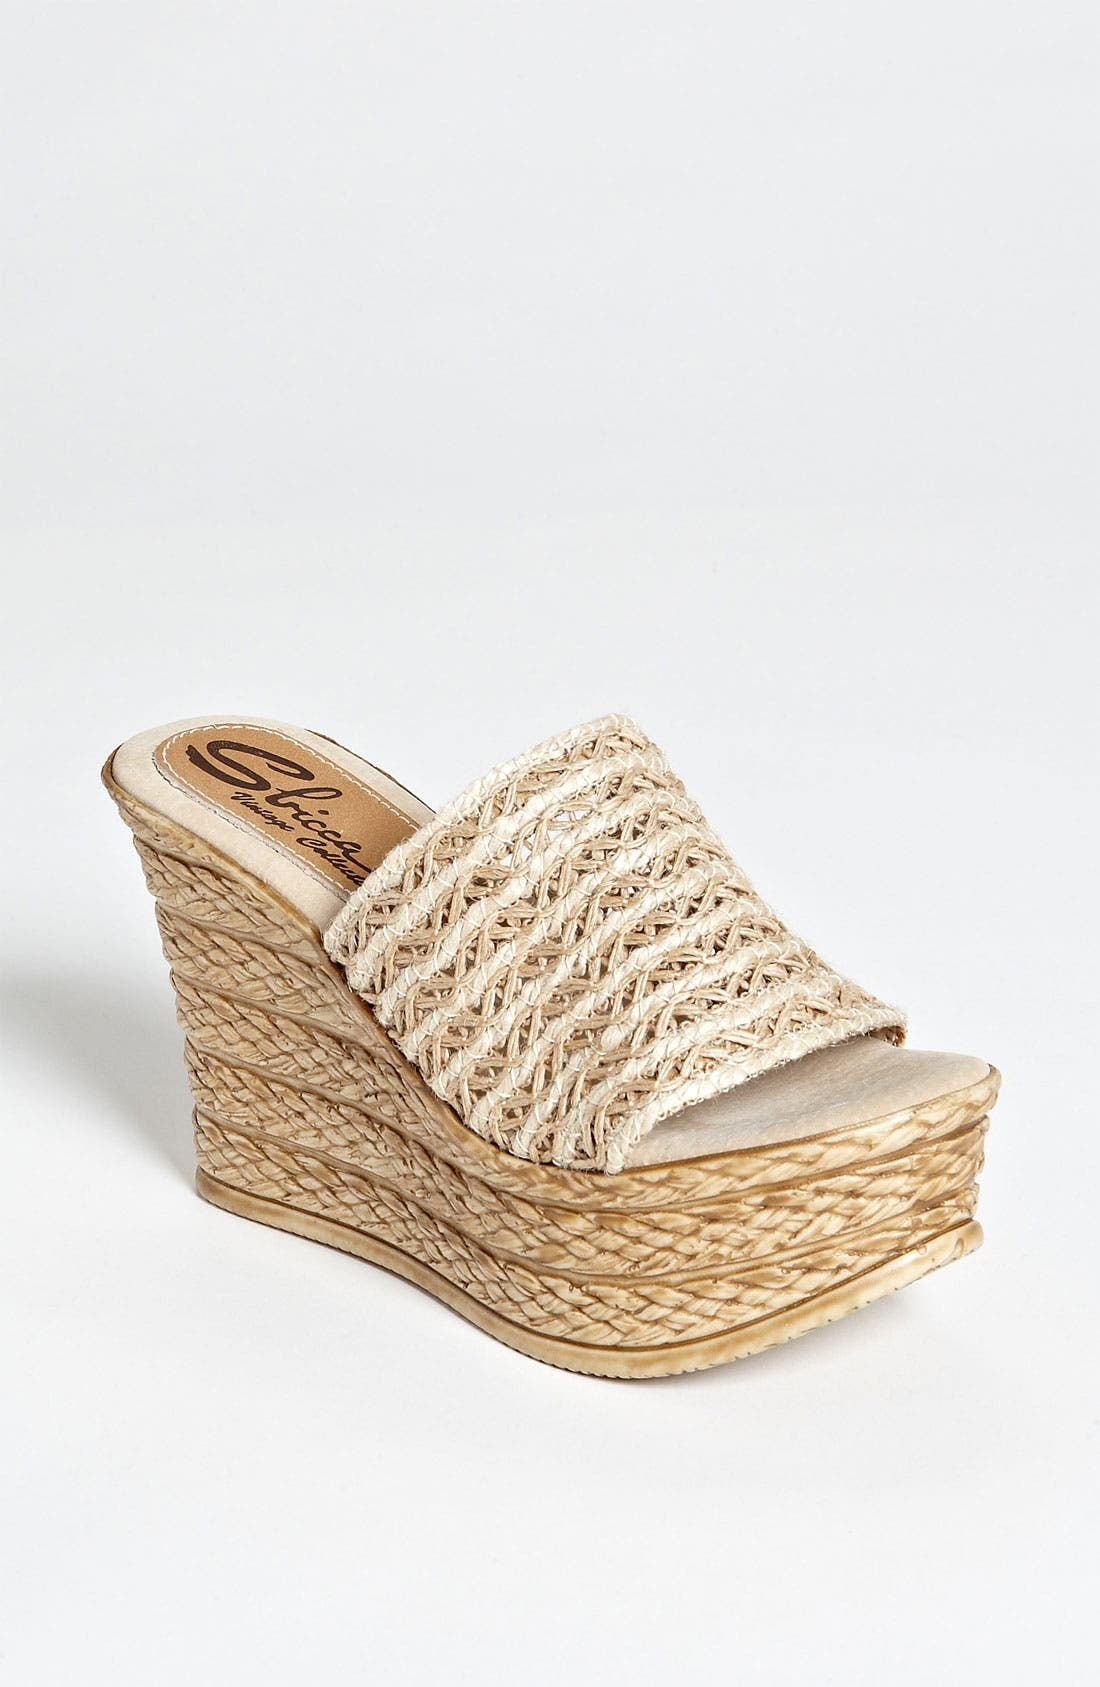 Alternate Image 1 Selected - Sbicca 'Cabana' Sandal